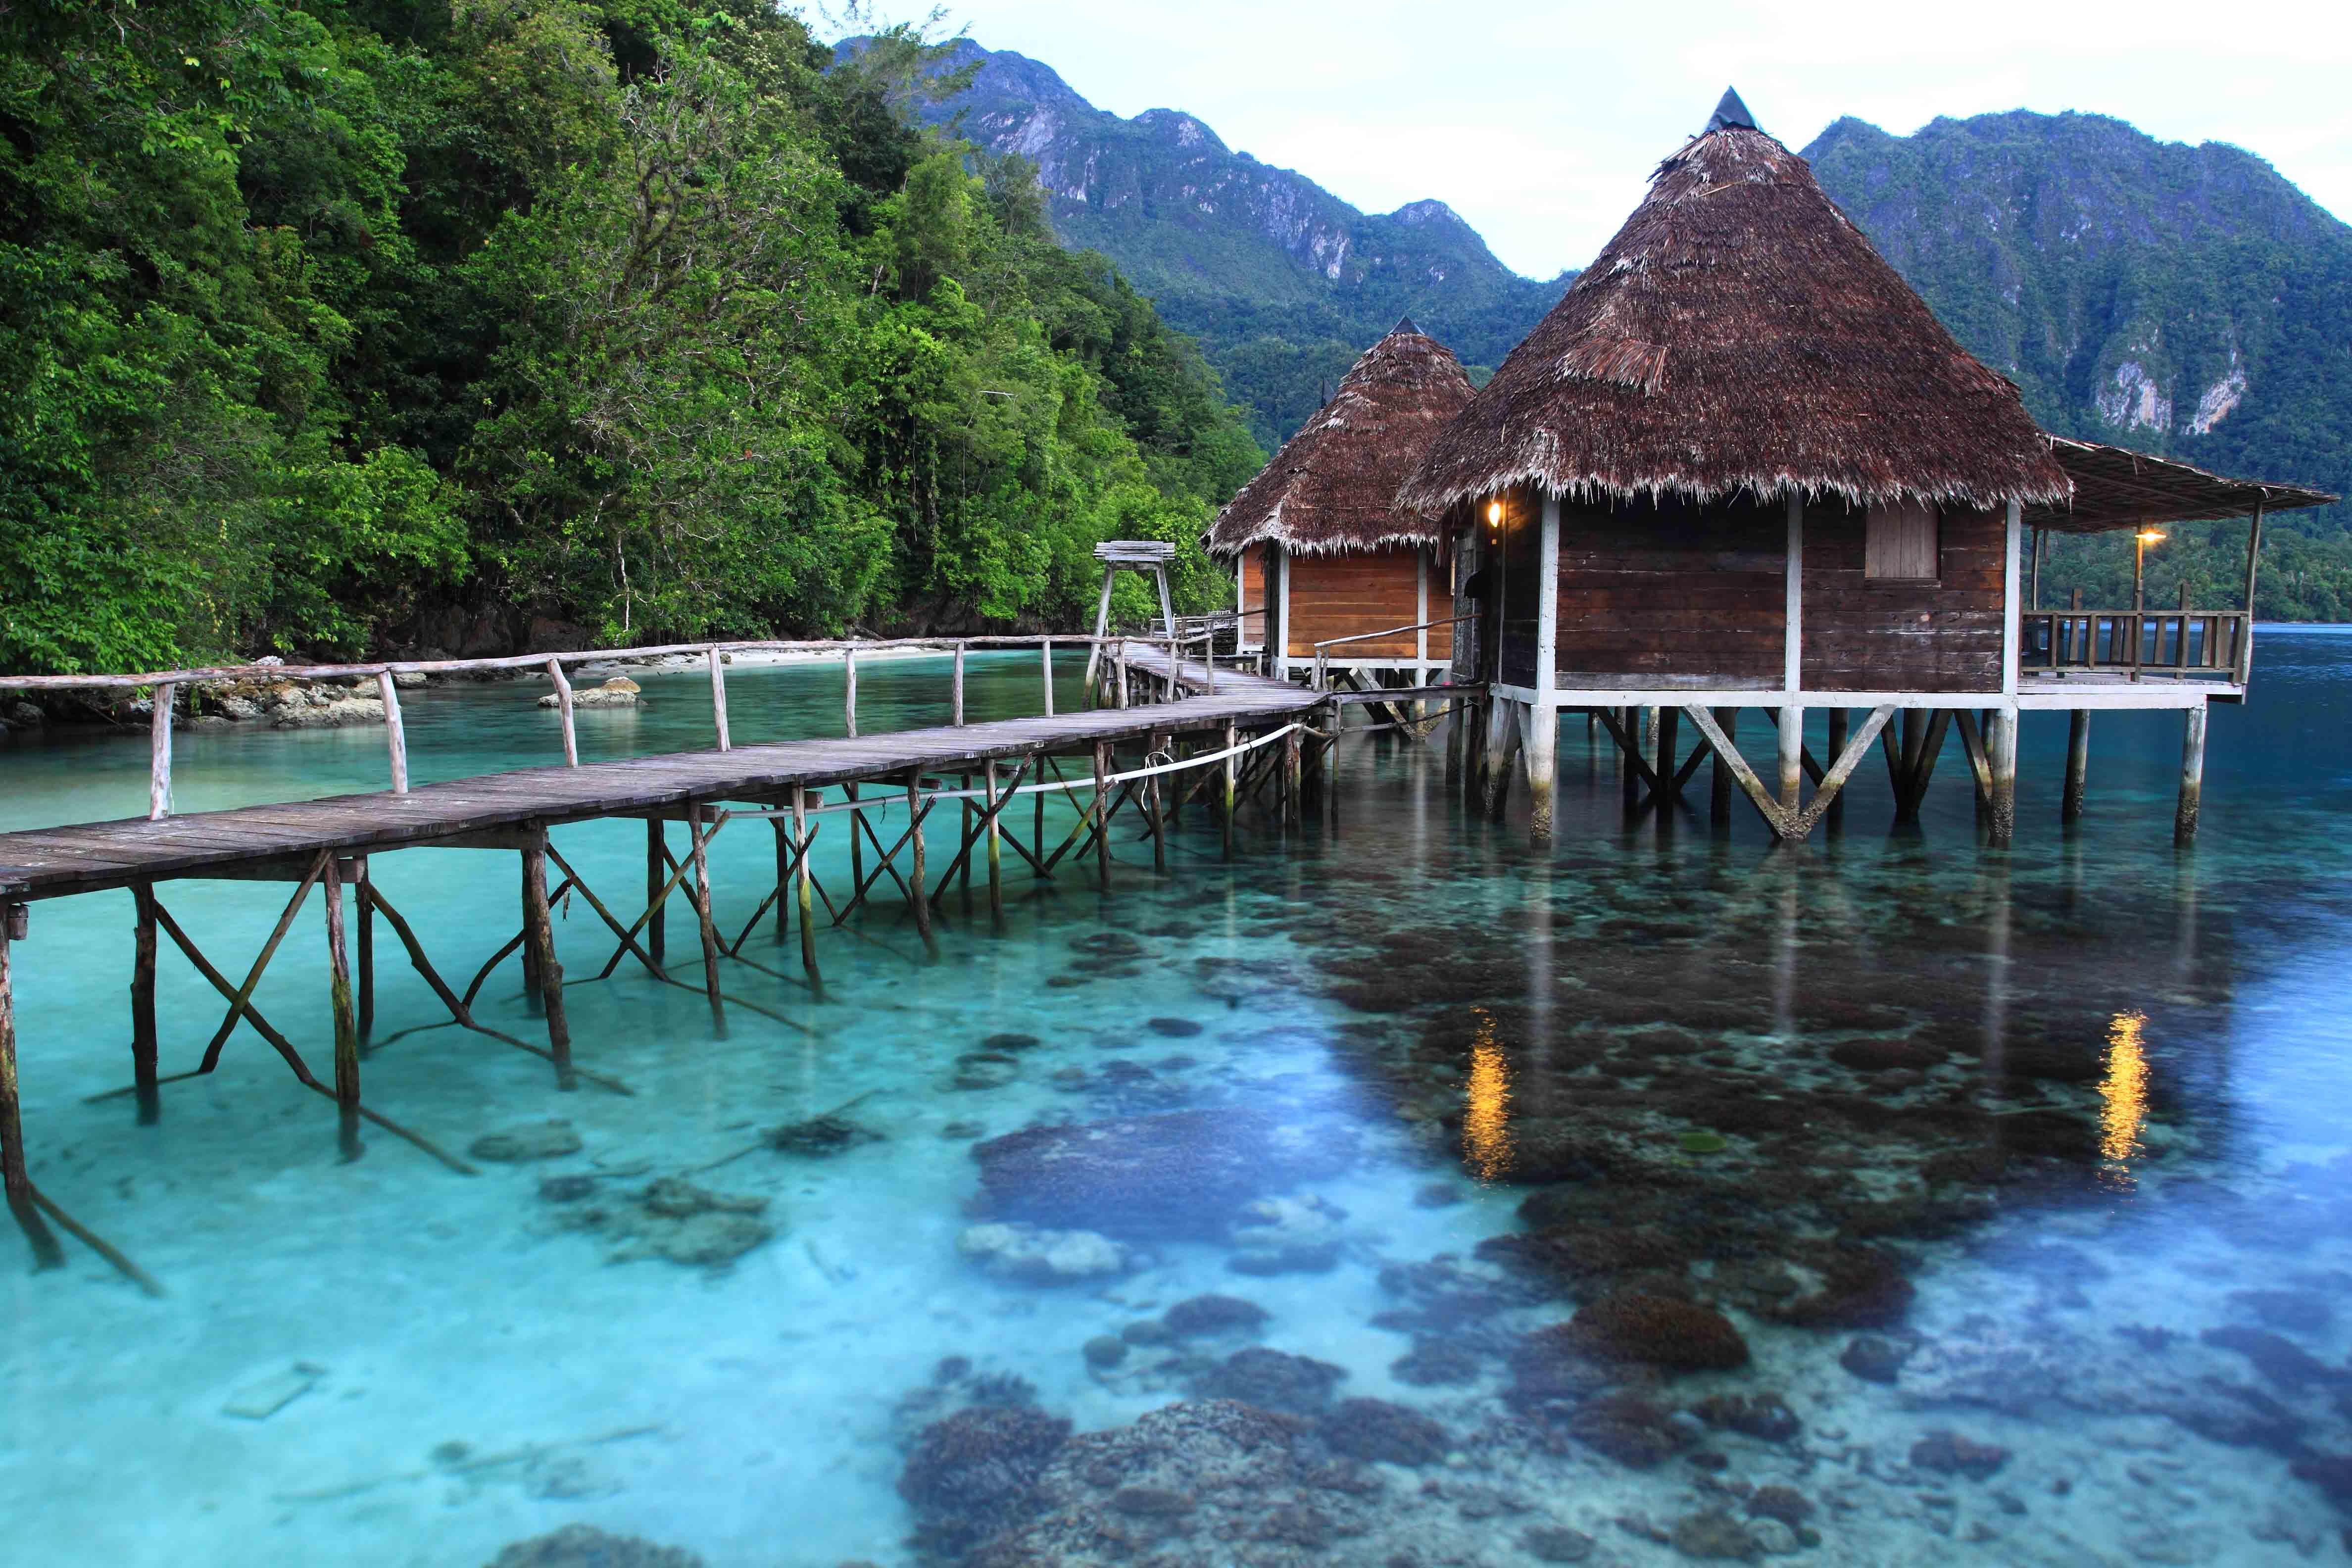 PULAU SERAM & ORA BEACH RESORT (THE LAST EDEN)